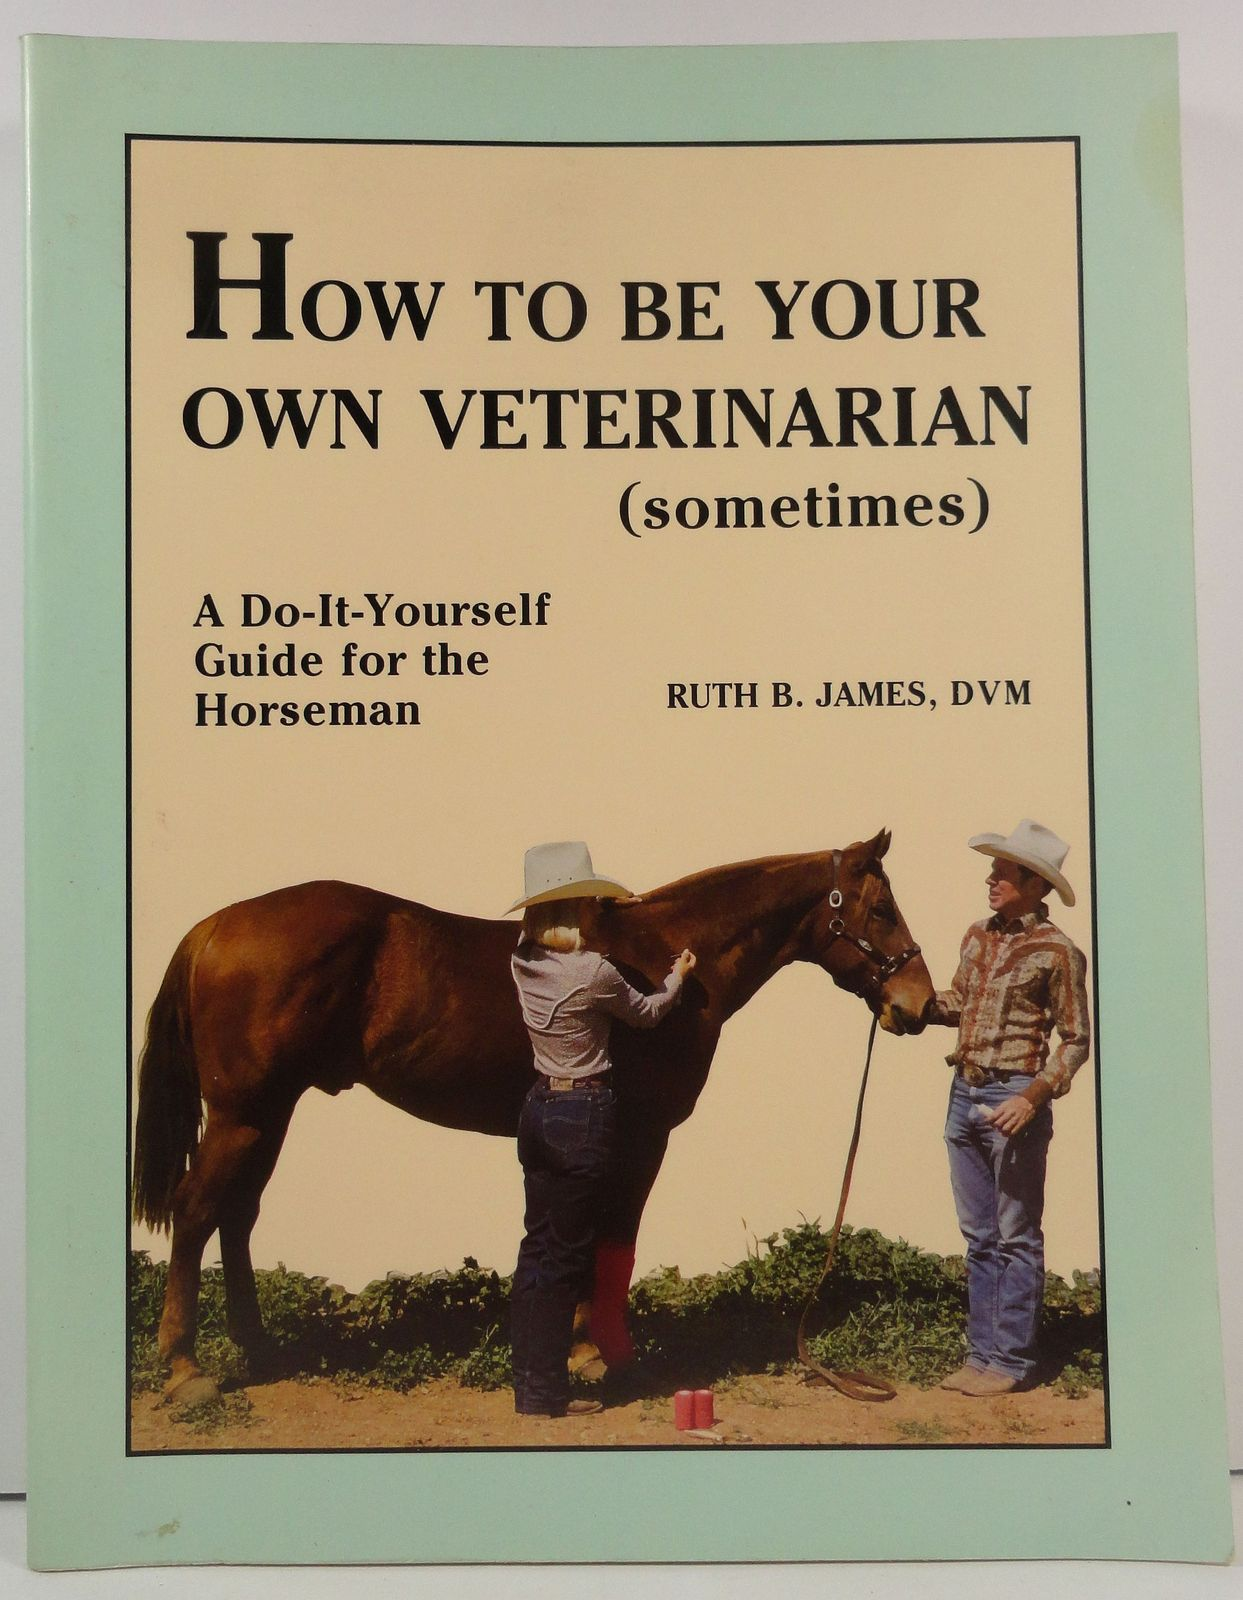 How to Be Your Own Veterinarian Sometimes by Ruth B. James